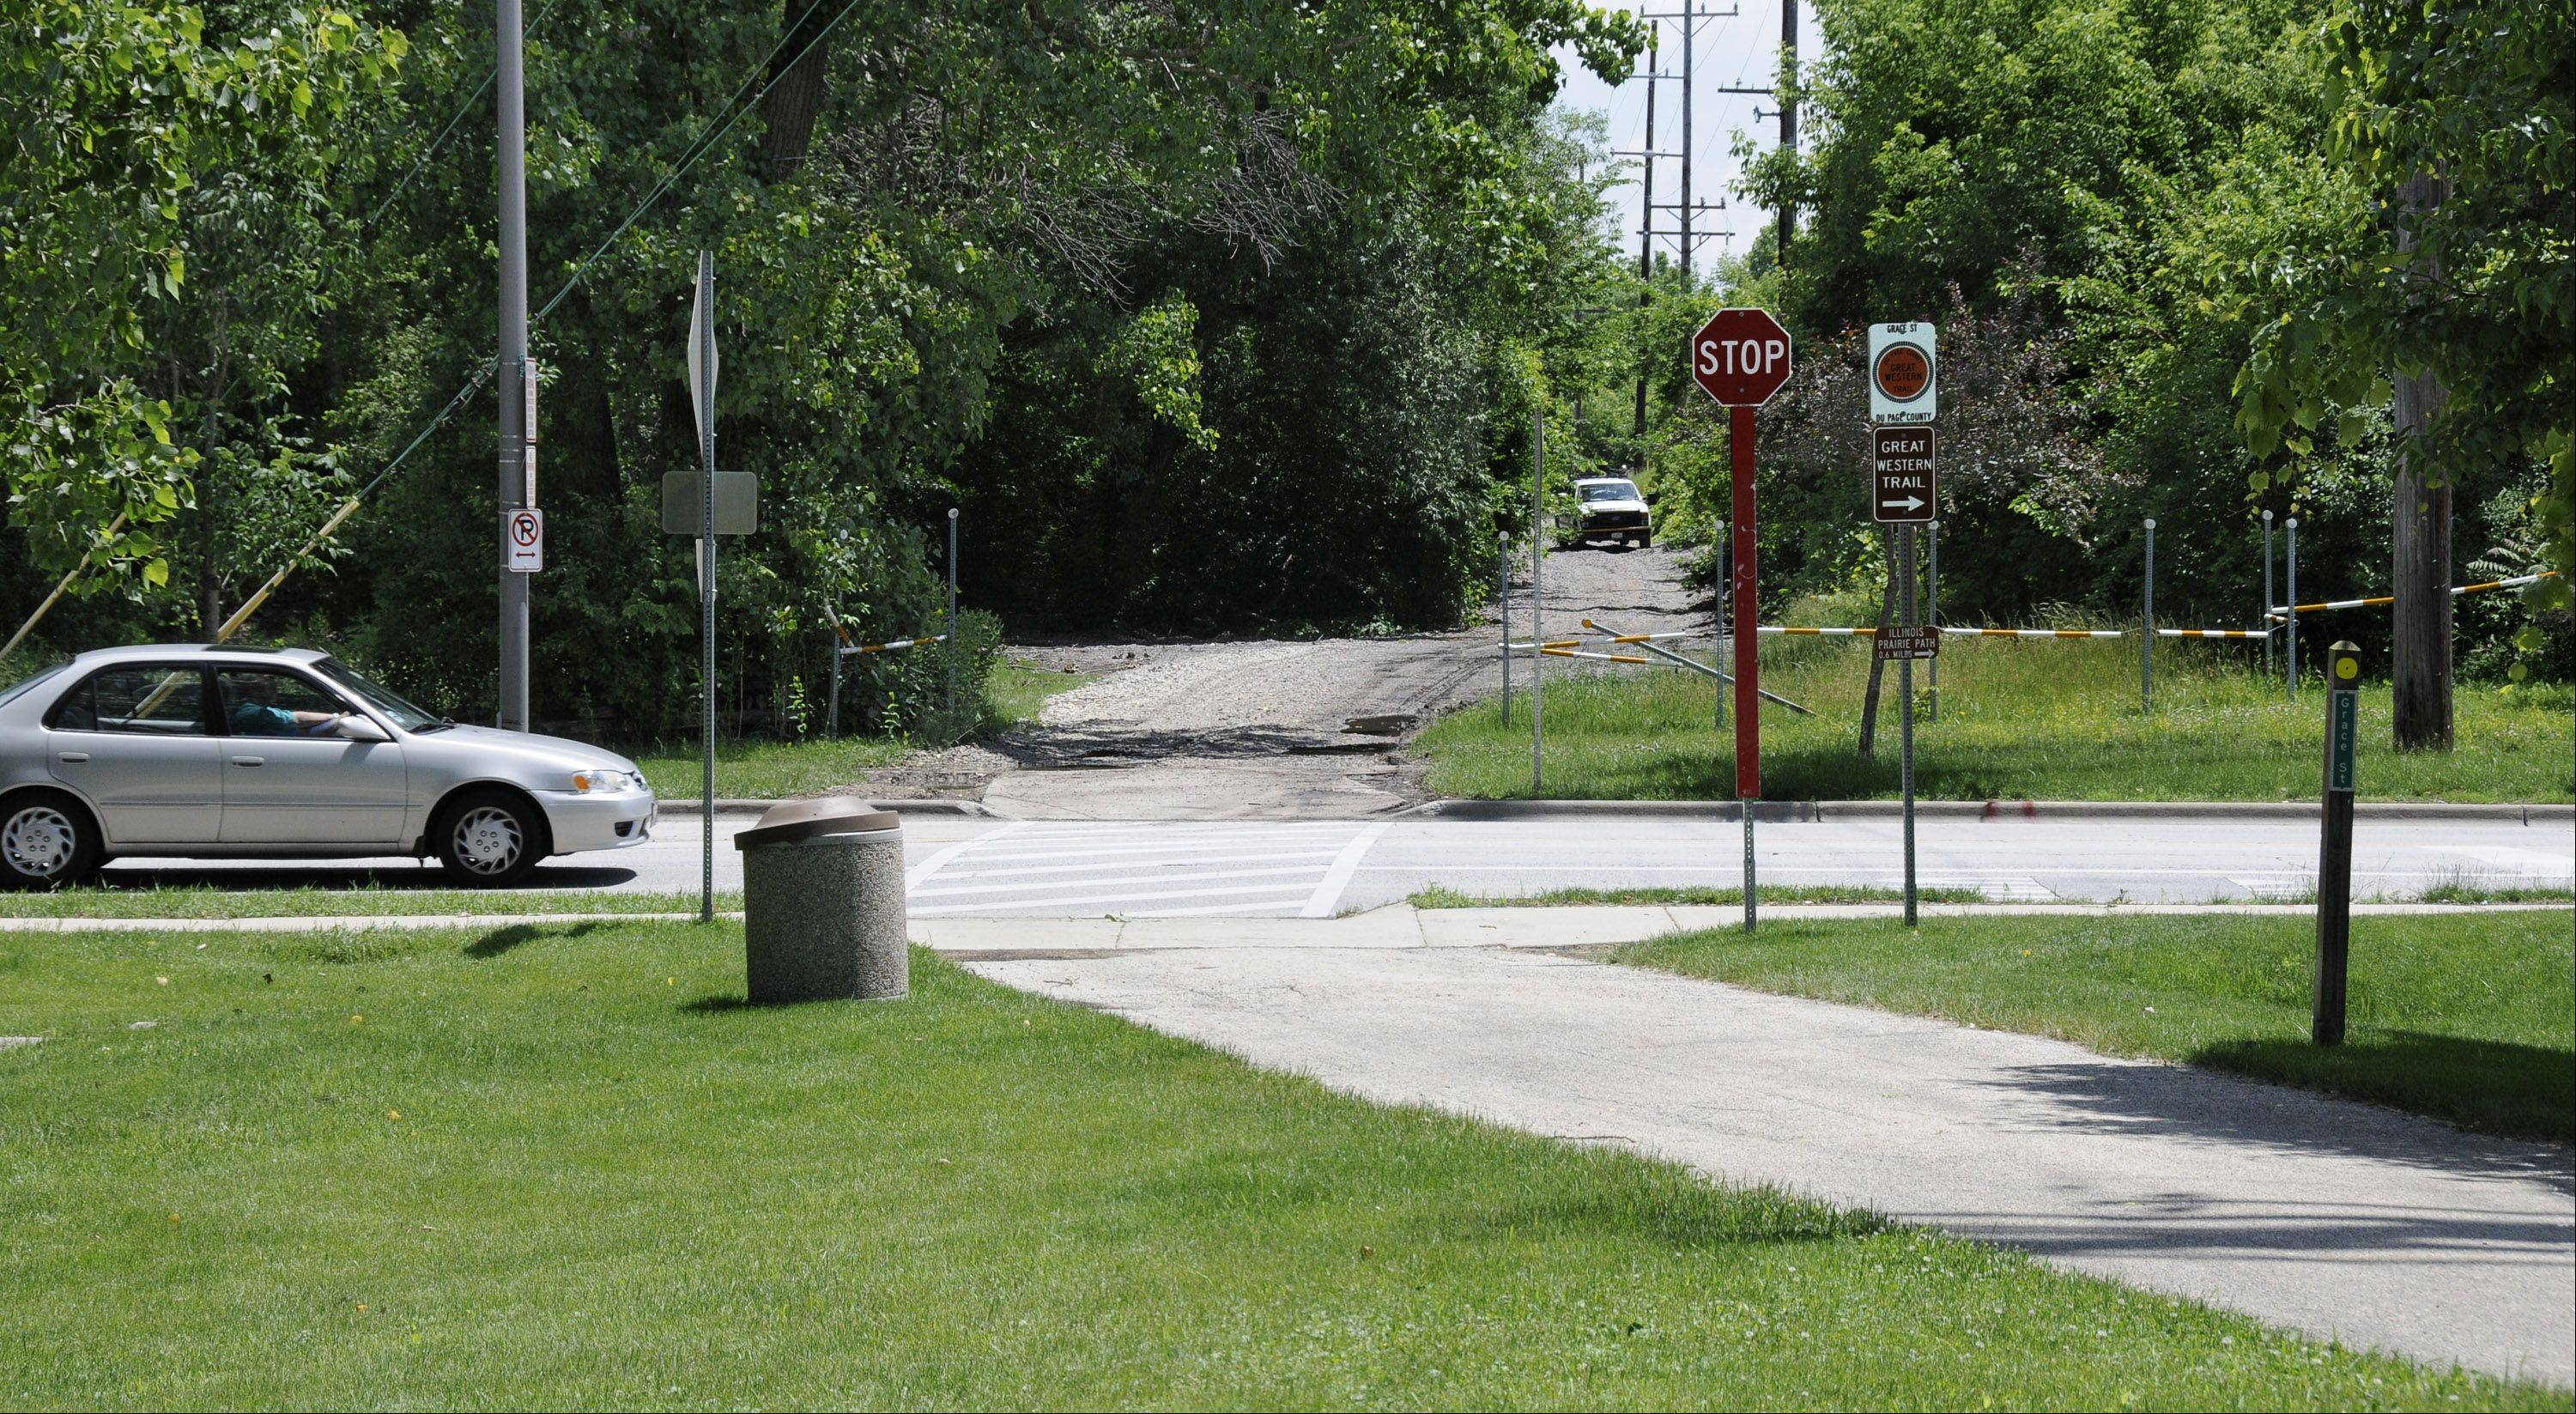 A new set of pedestrian bridges at Grace Street, St. Charles Road and the Union Pacific Railroad tracks in Lombard will not open until August after rains postponed the completion of construction. The bridges, which have been under construction since March 2012, originally were scheduled to open May 25.